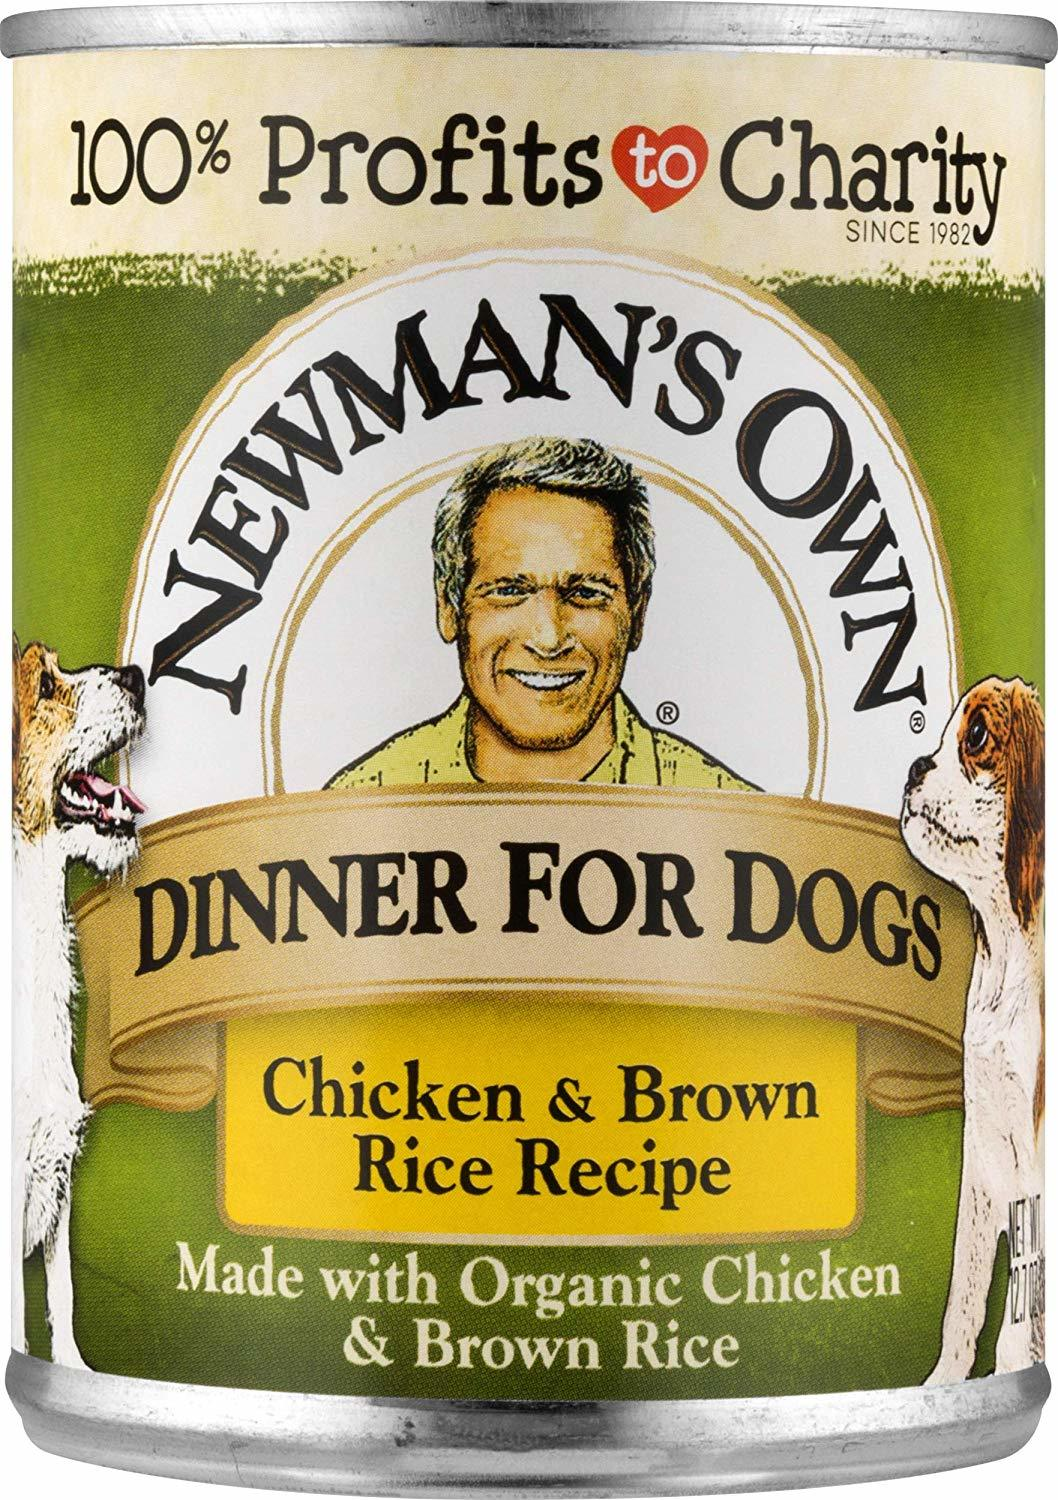 Dogs organic food Newman's Own